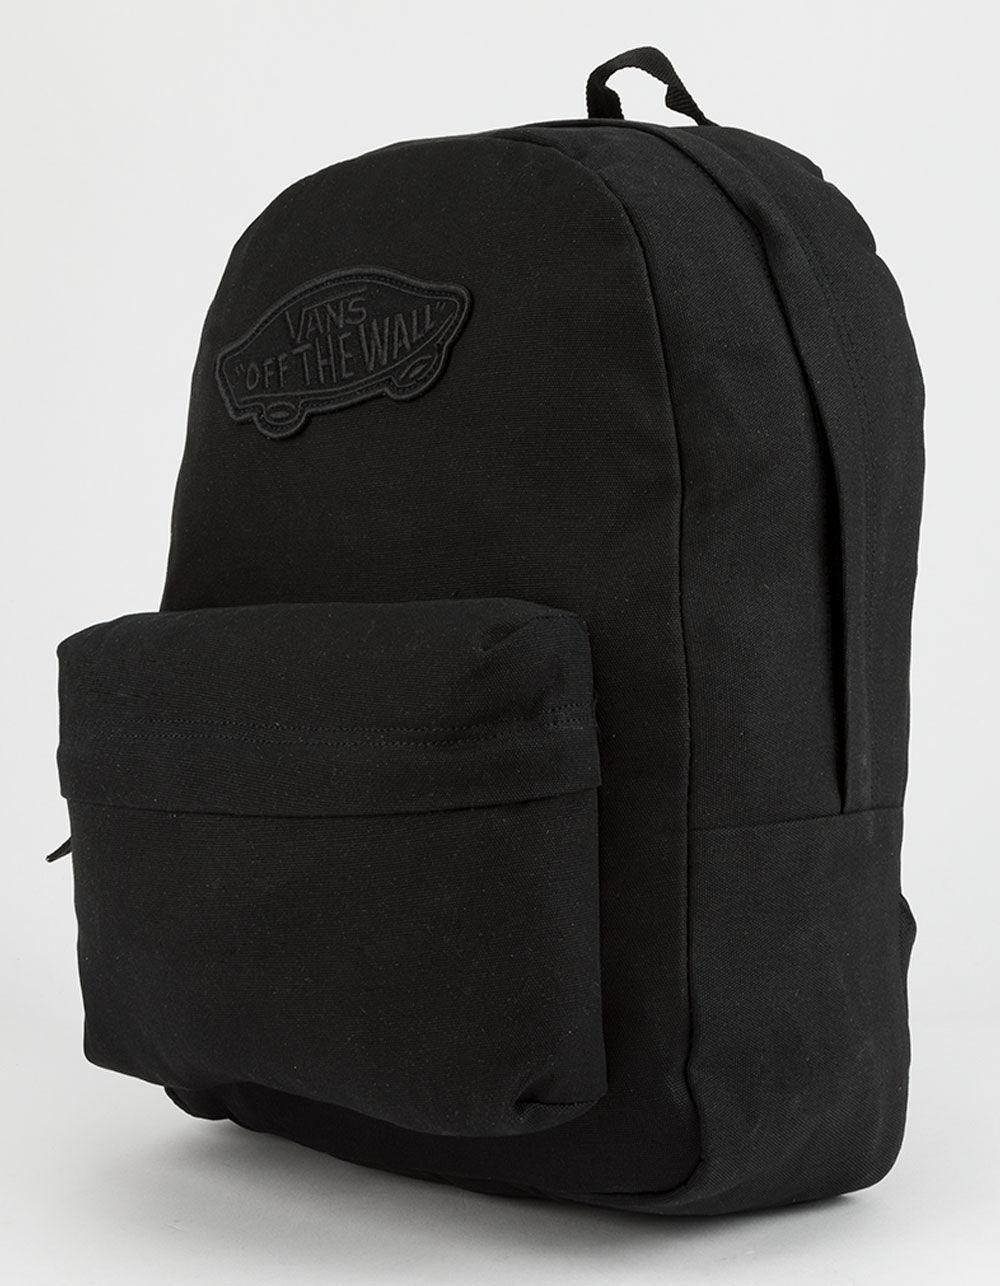 a1cbbbd81f9 Lyst - Vans Realm Black Backpack in Black for Men